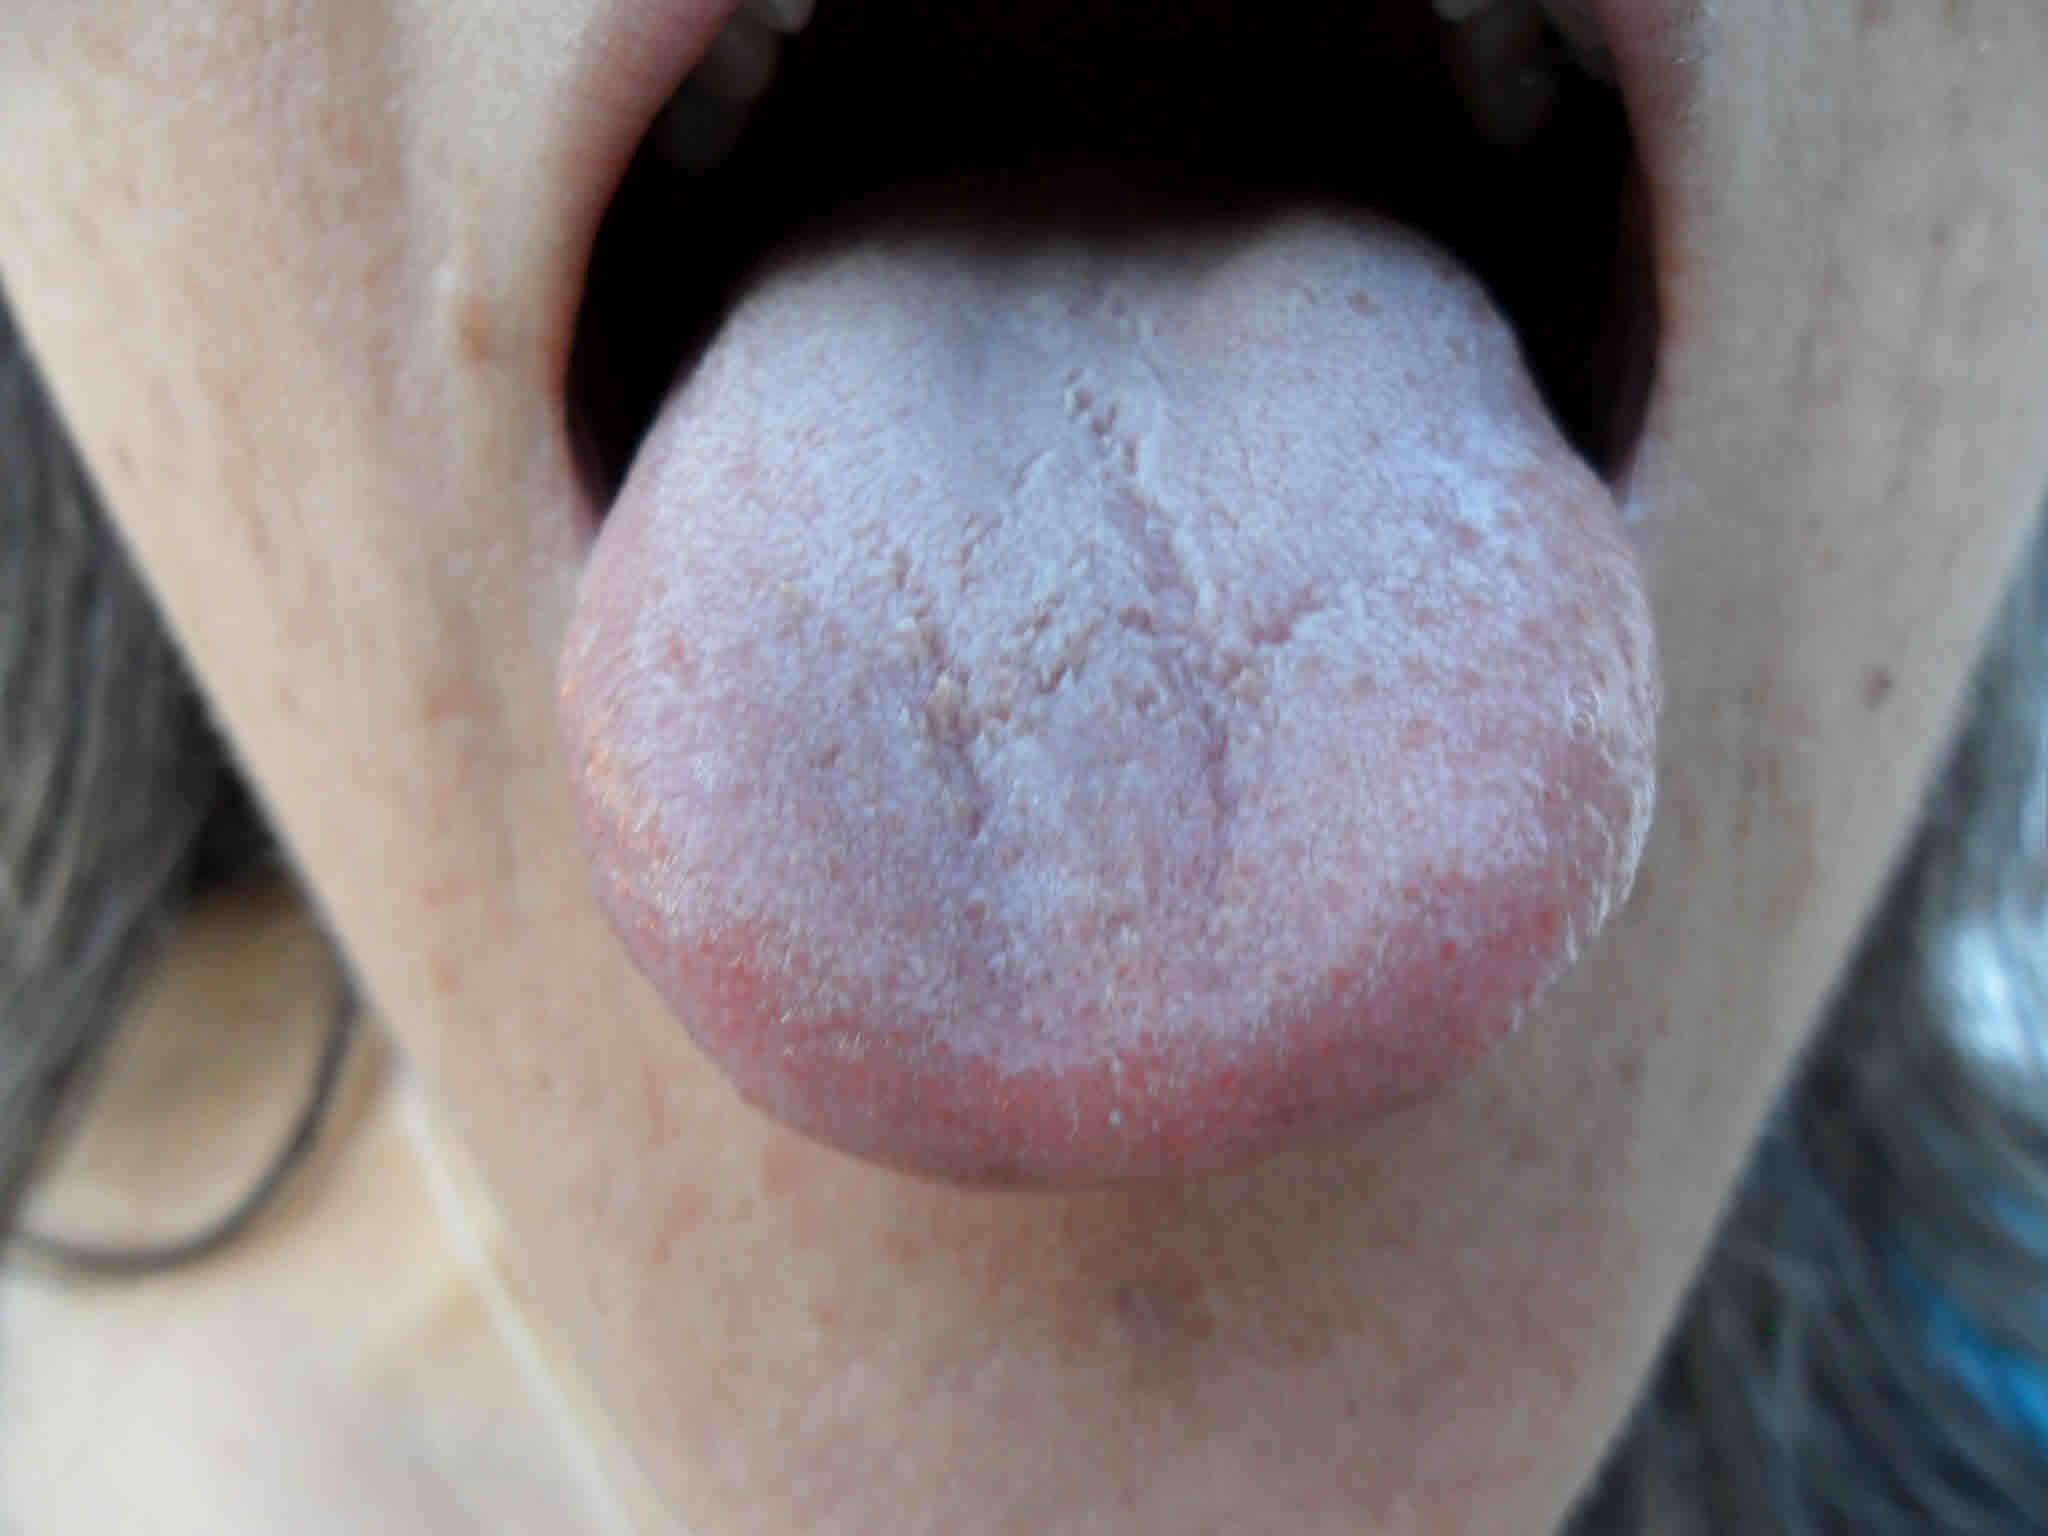 tongue | Wendy Stedeford's Acupuncture and Traditional ...: http://wstedeford.wordpress.com/category/tongue